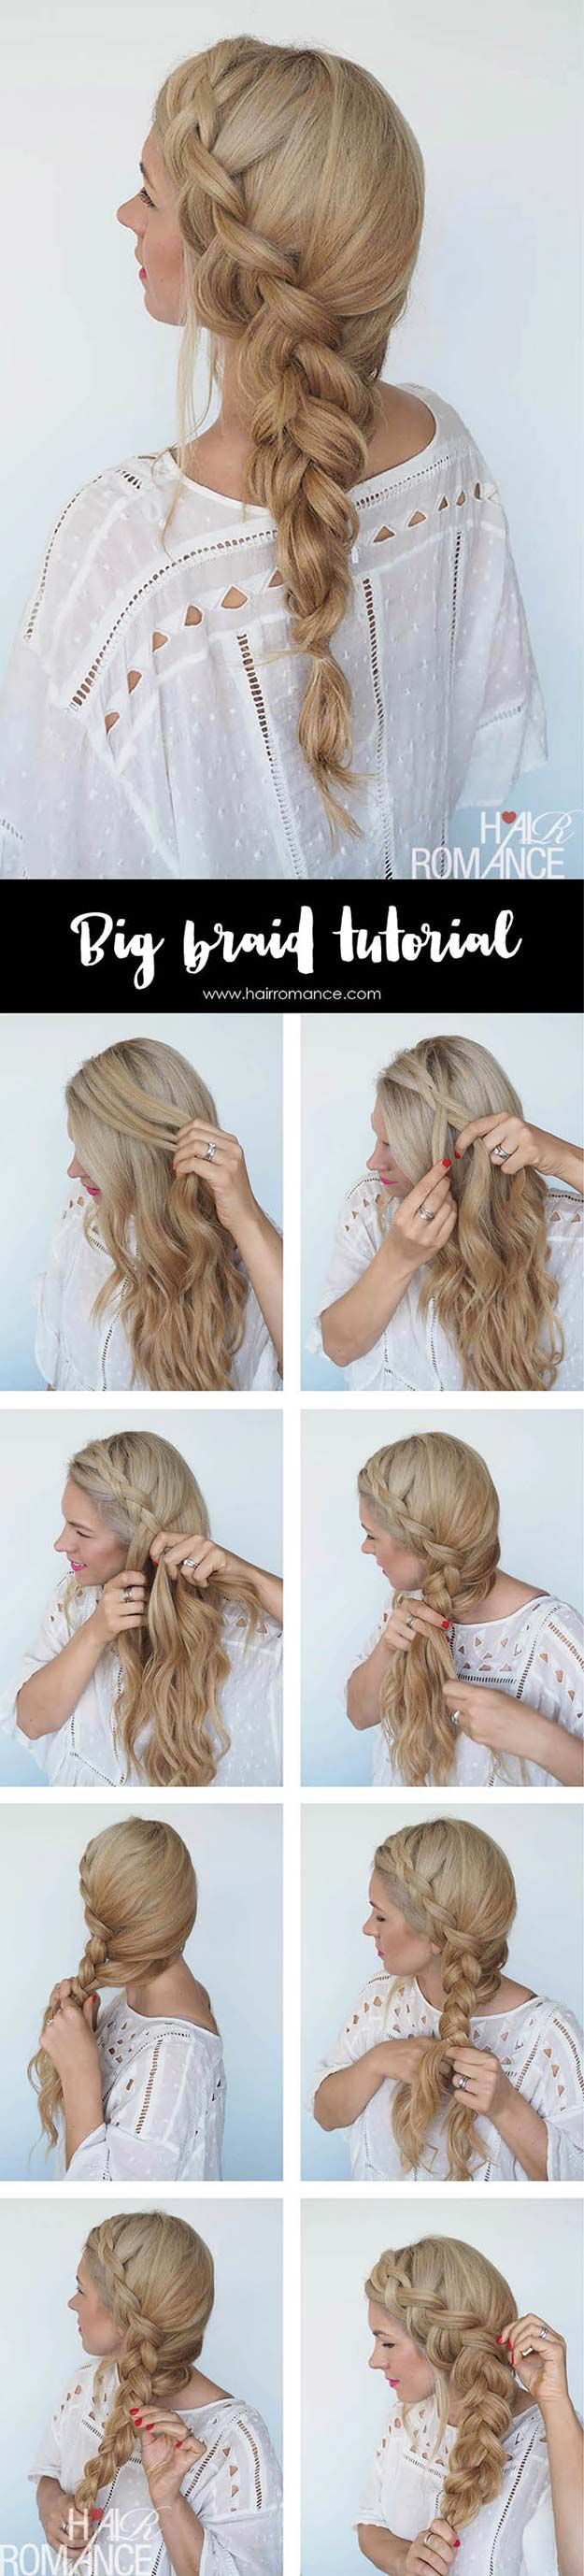 Best hair braiding tutorials big braid instant mermaid hair